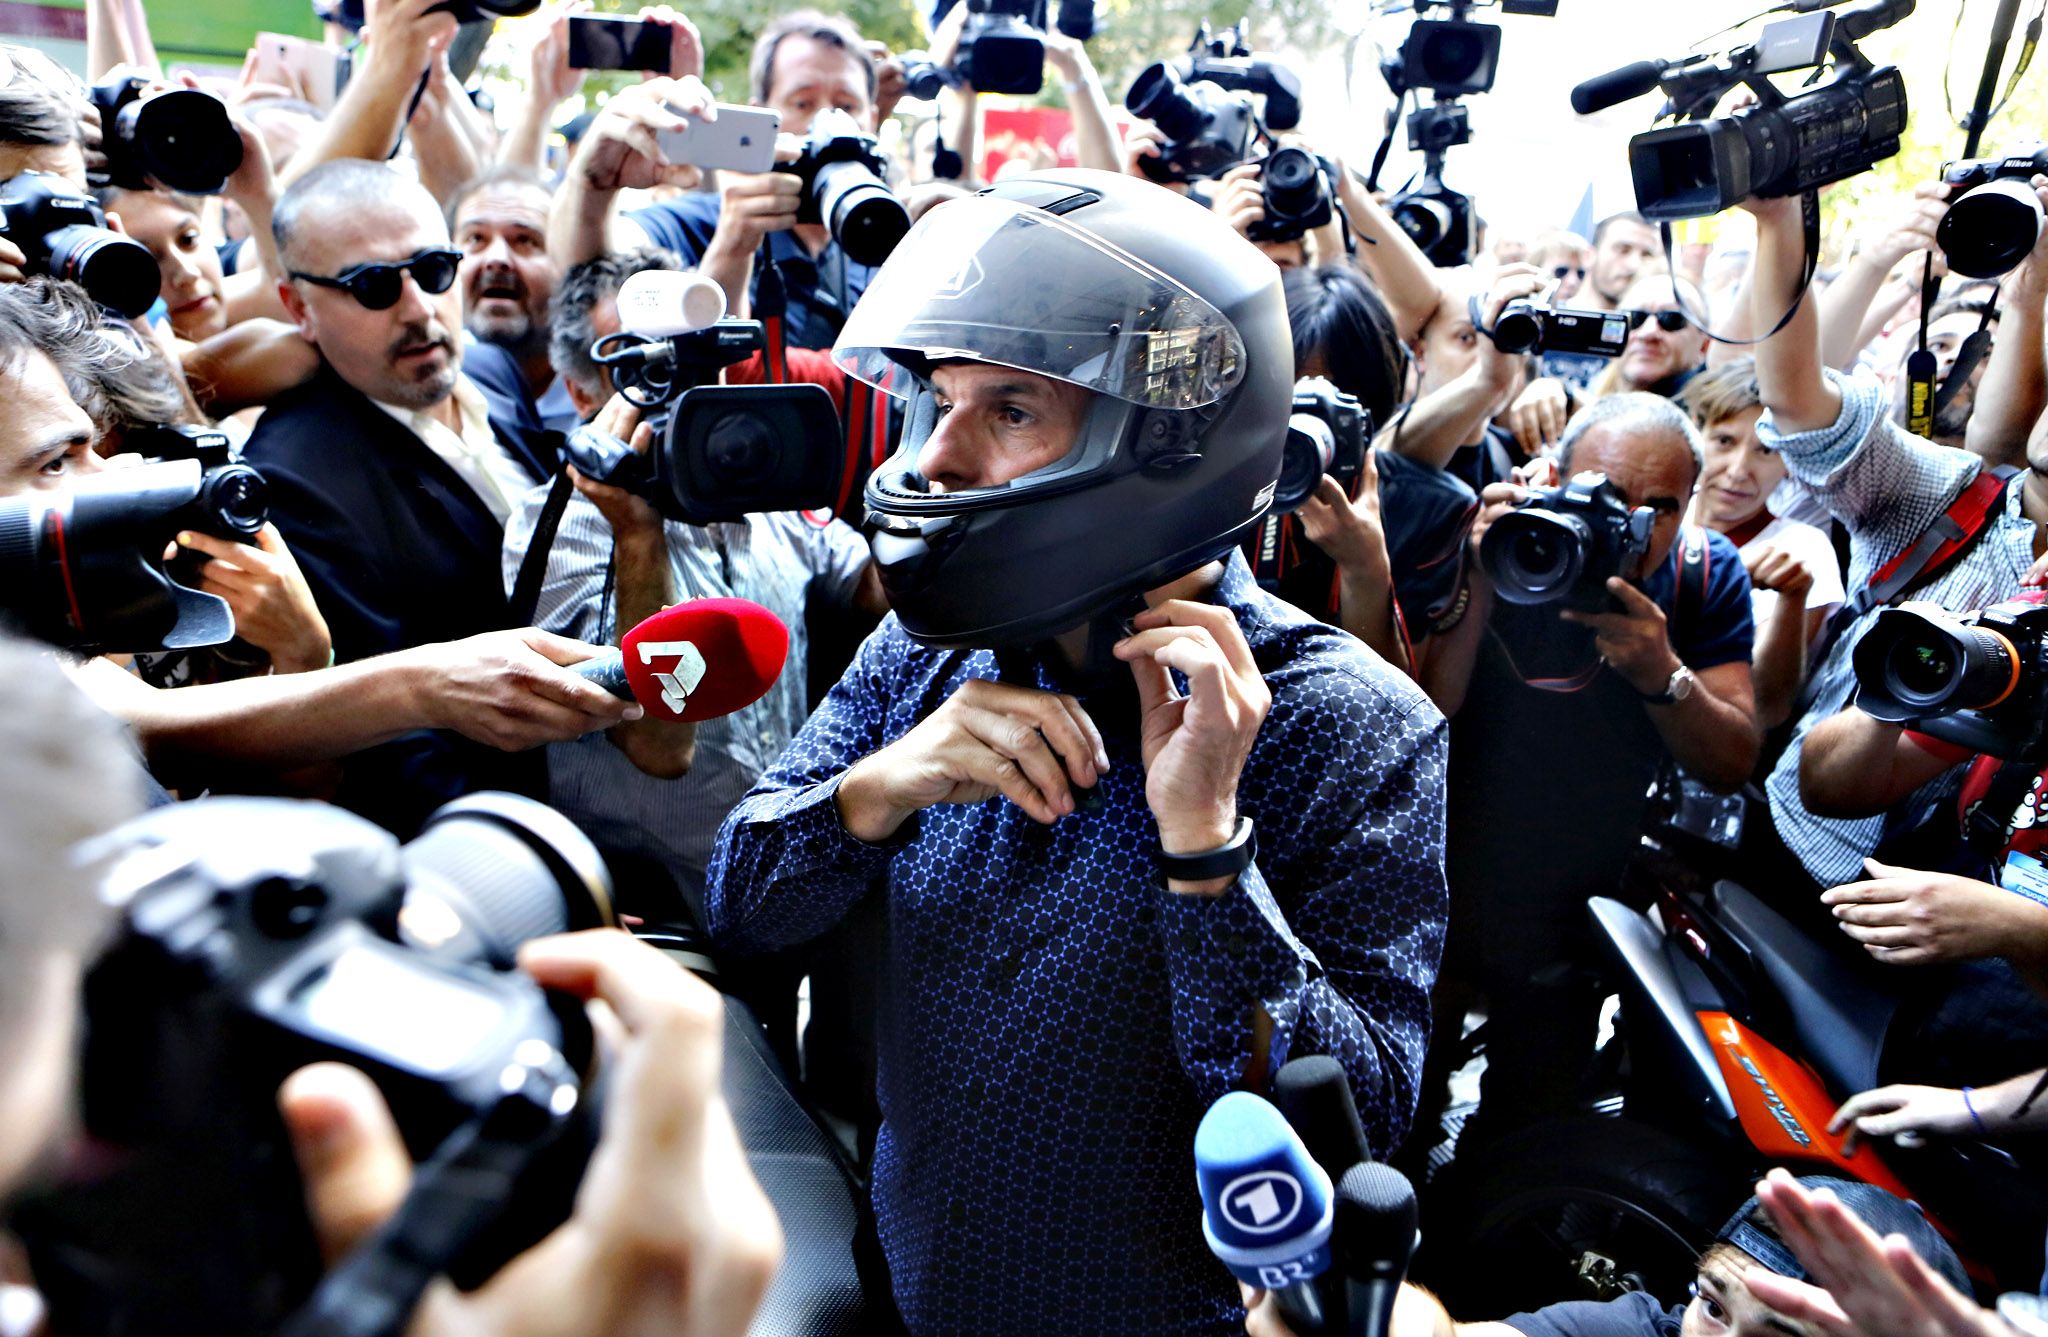 Outgoing Greek Finance Minister Yanis Varoufakis puts his helmet on as he is surrounded by media after his resignation in Athens, Monday, July 6, 2015. Greece and its membership in Europe's joint currency faced an uncertain future Monday, with the country under pressure to reach a bailout deal with creditors as soon as possible after Greeks resoundingly rejected the notion of more austerity in exchange for aid.